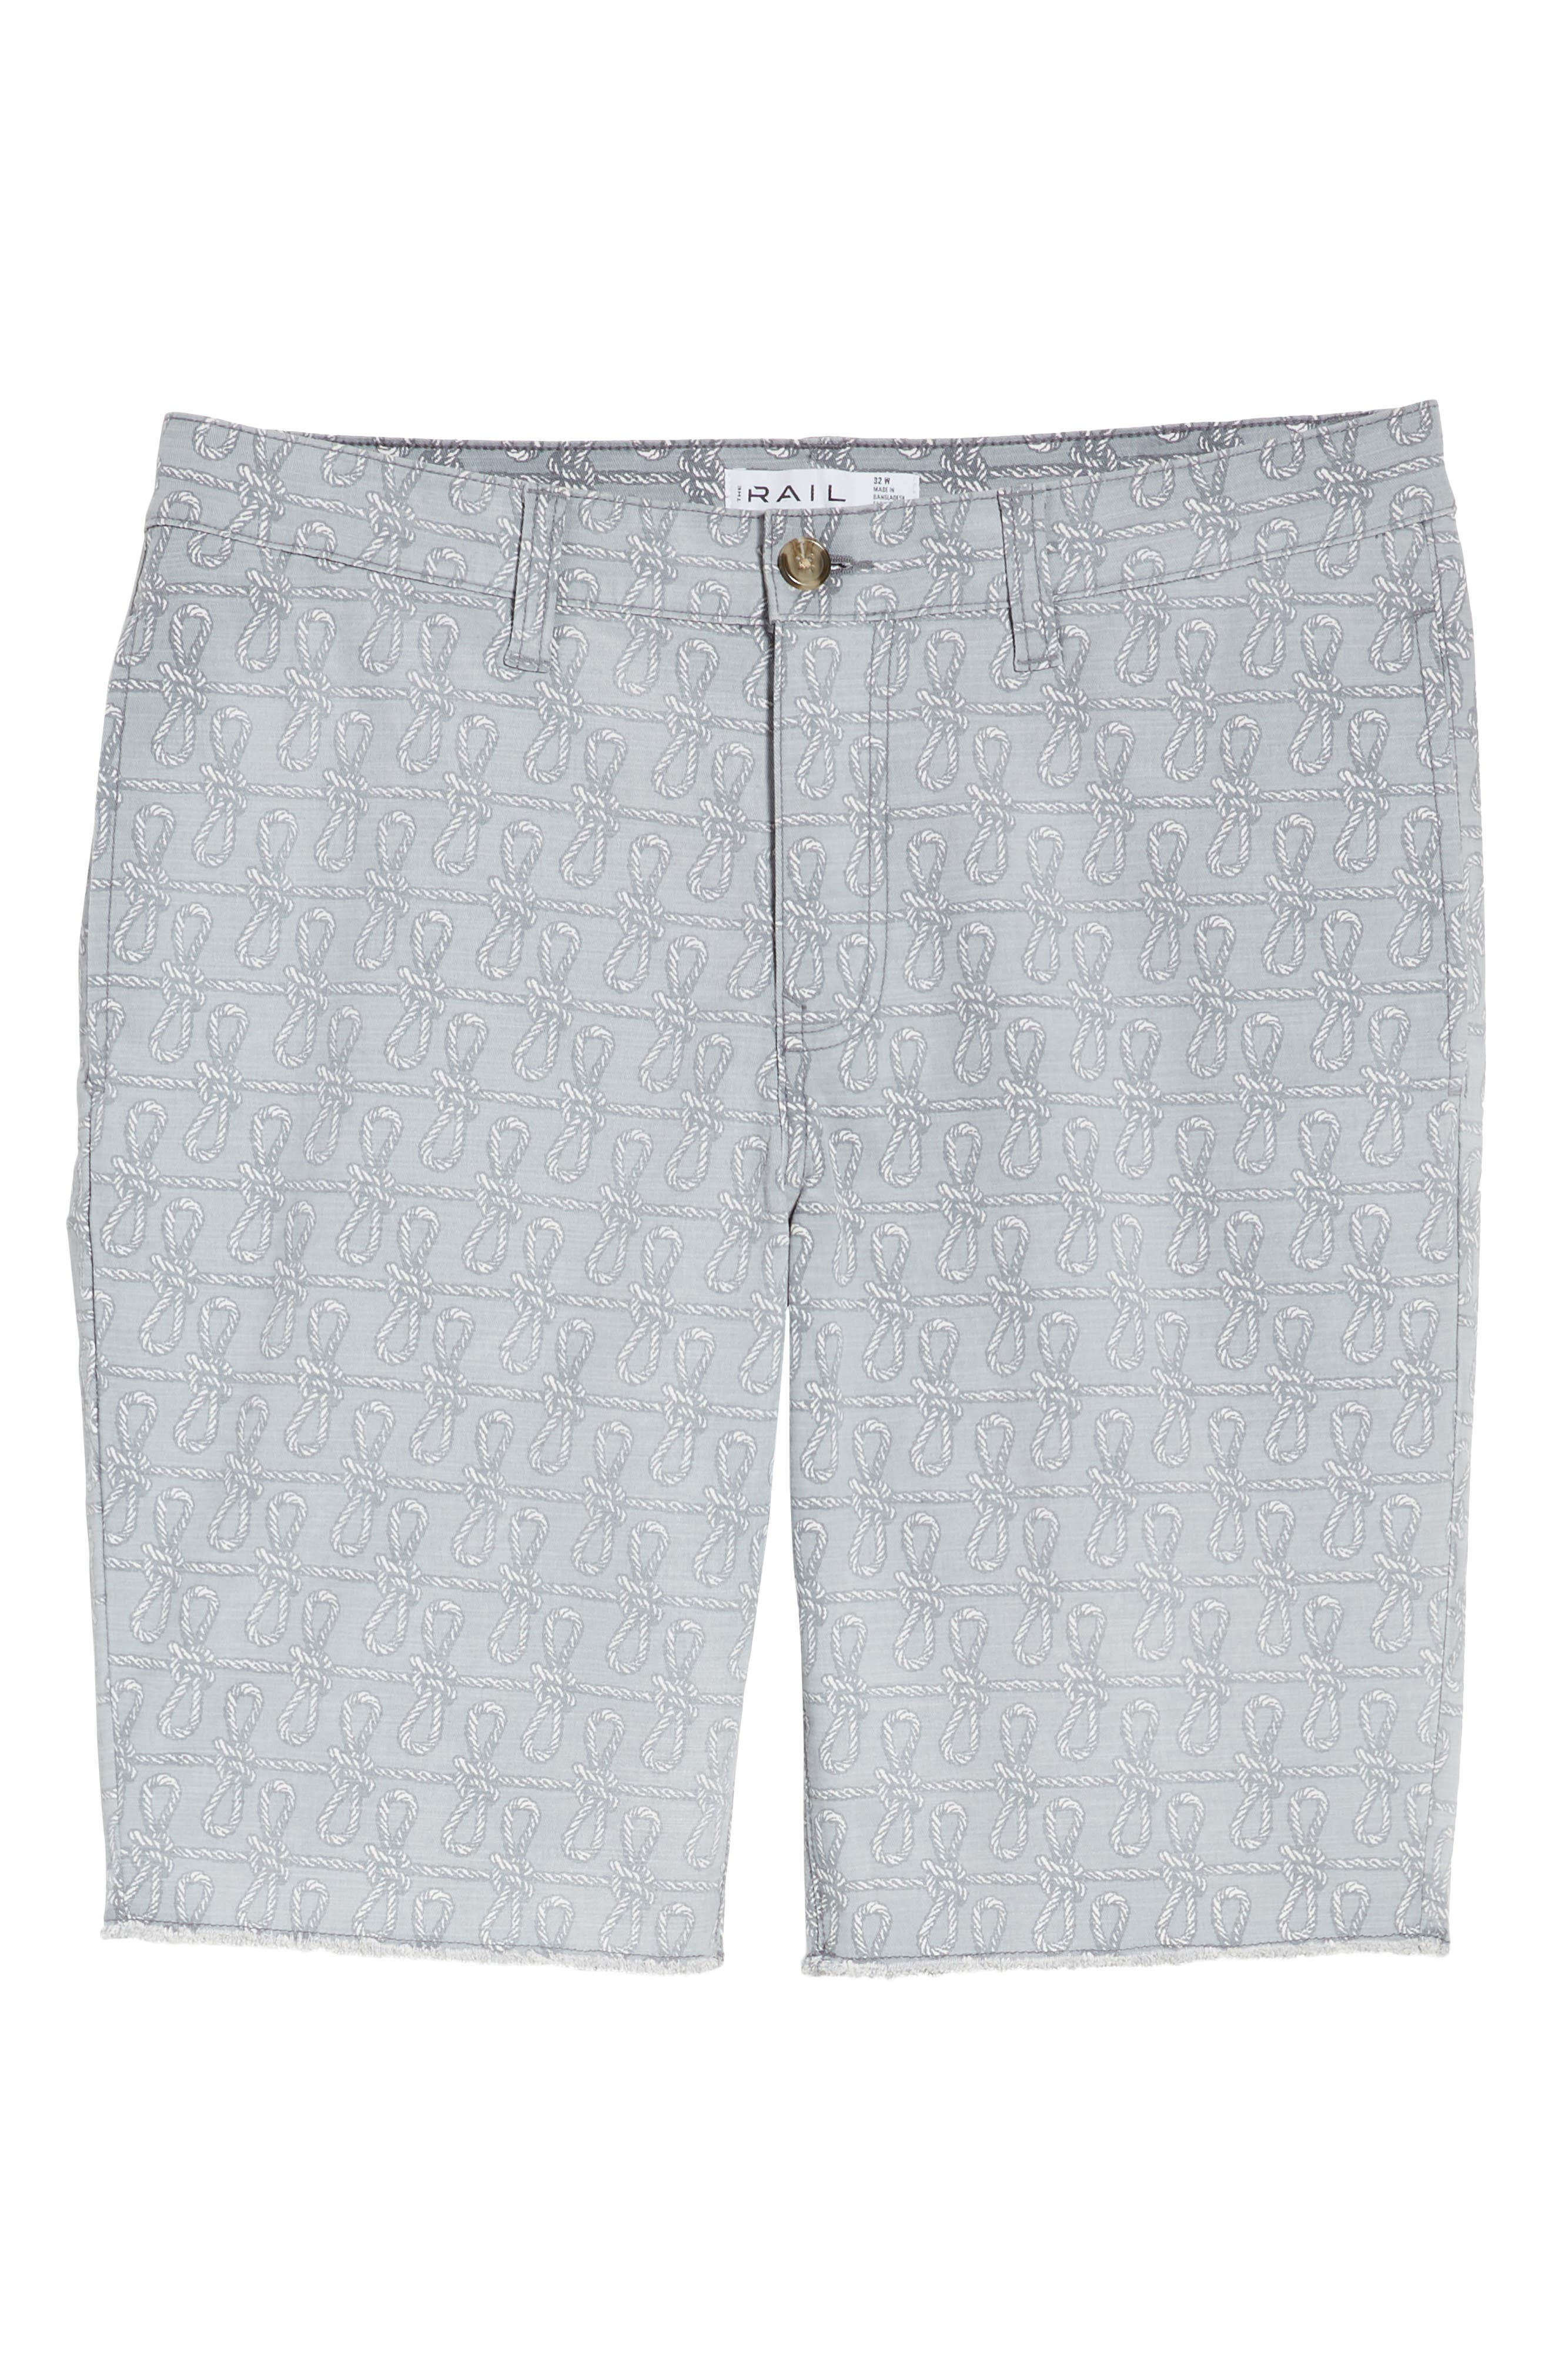 Print Frost Wash Shorts,                             Alternate thumbnail 6, color,                             030